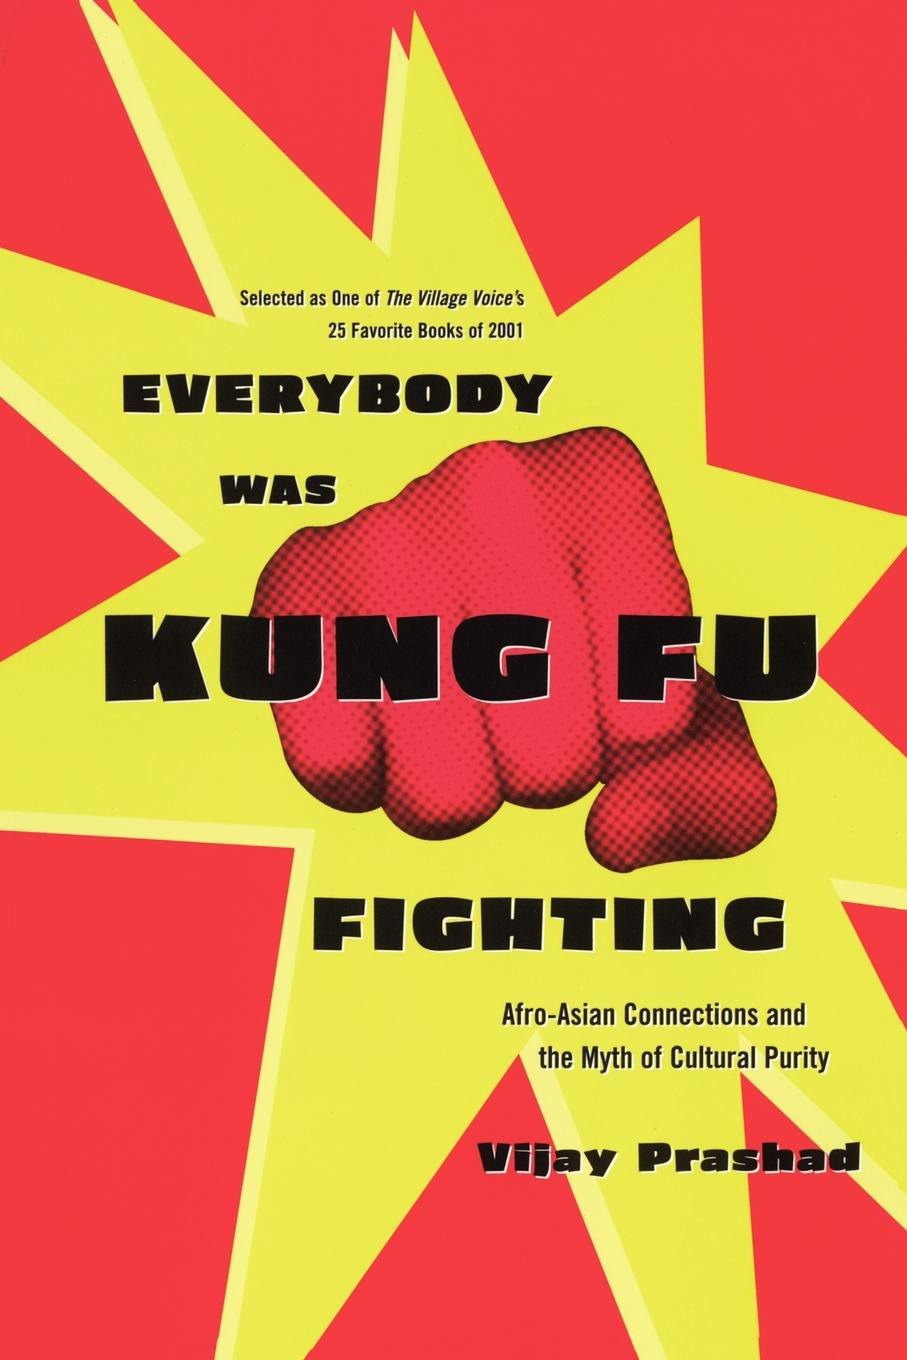 Vijay Prashad, Prashad Everybody Was Kung Fu Fighting. Afro-Asian Connections and the Myth of Cultural Purity